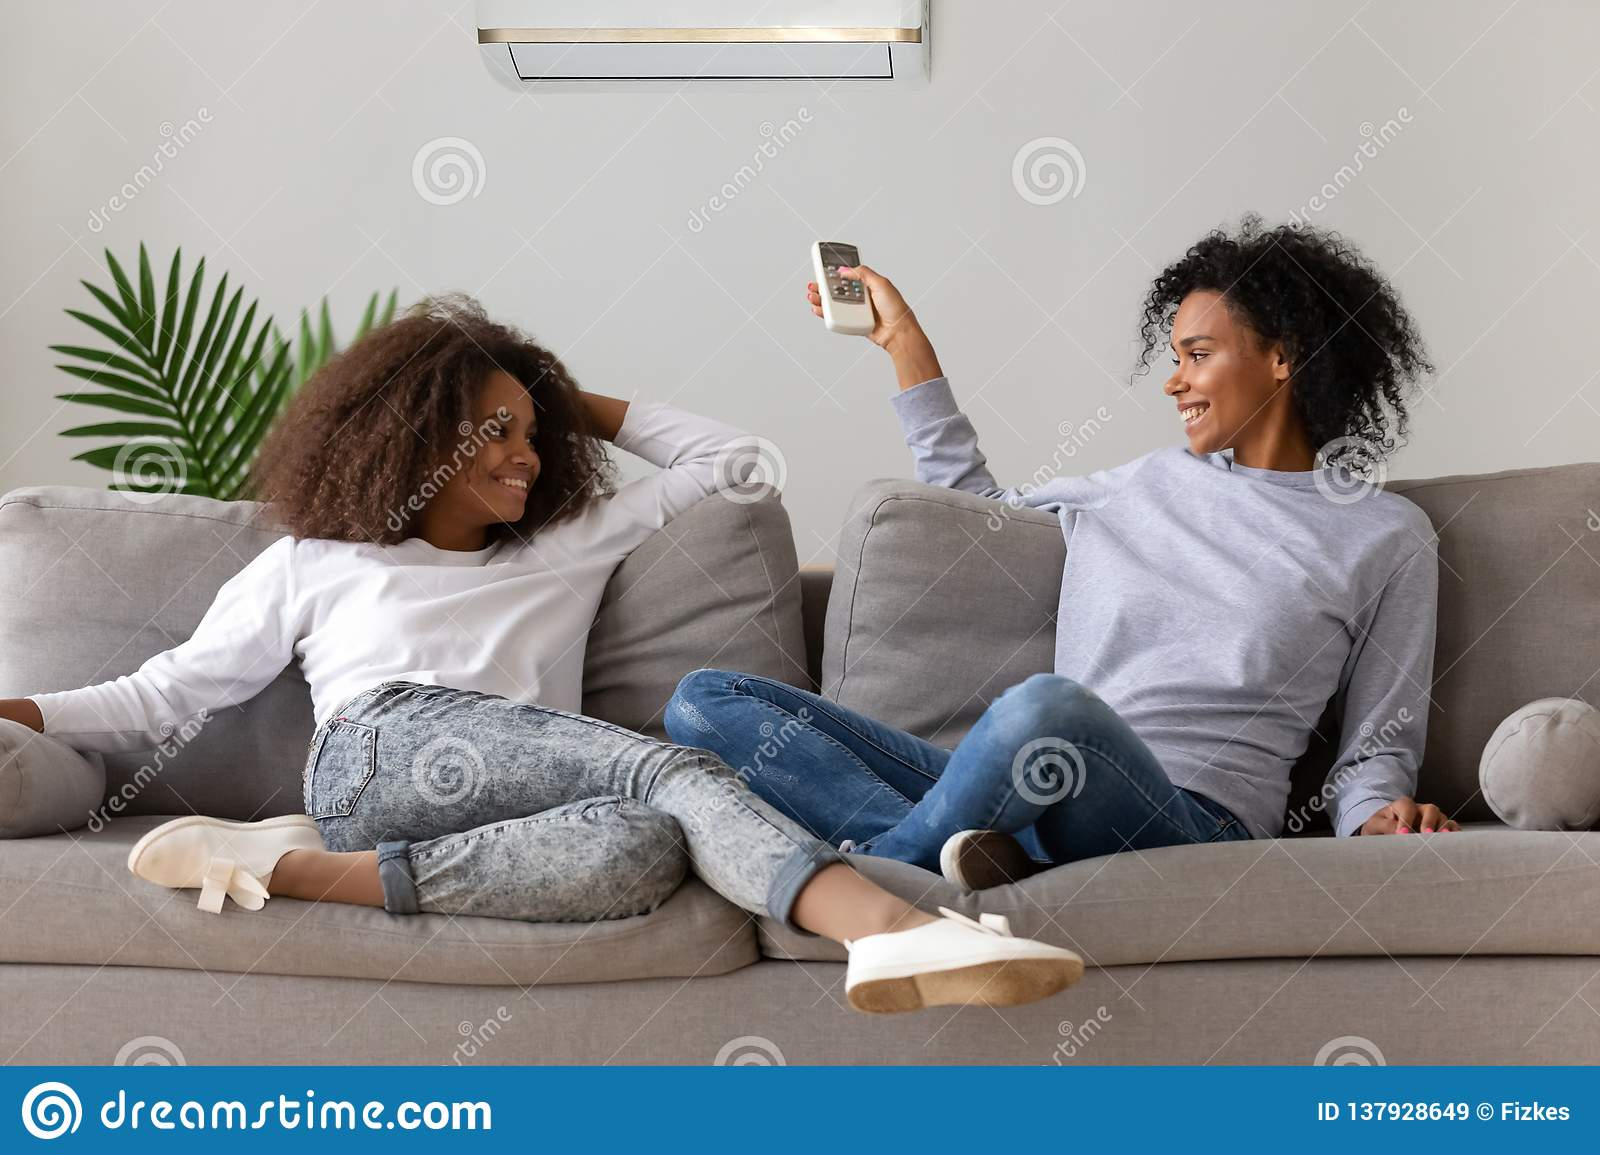 Happy mom and daughter relaxing on couch under air conditioner